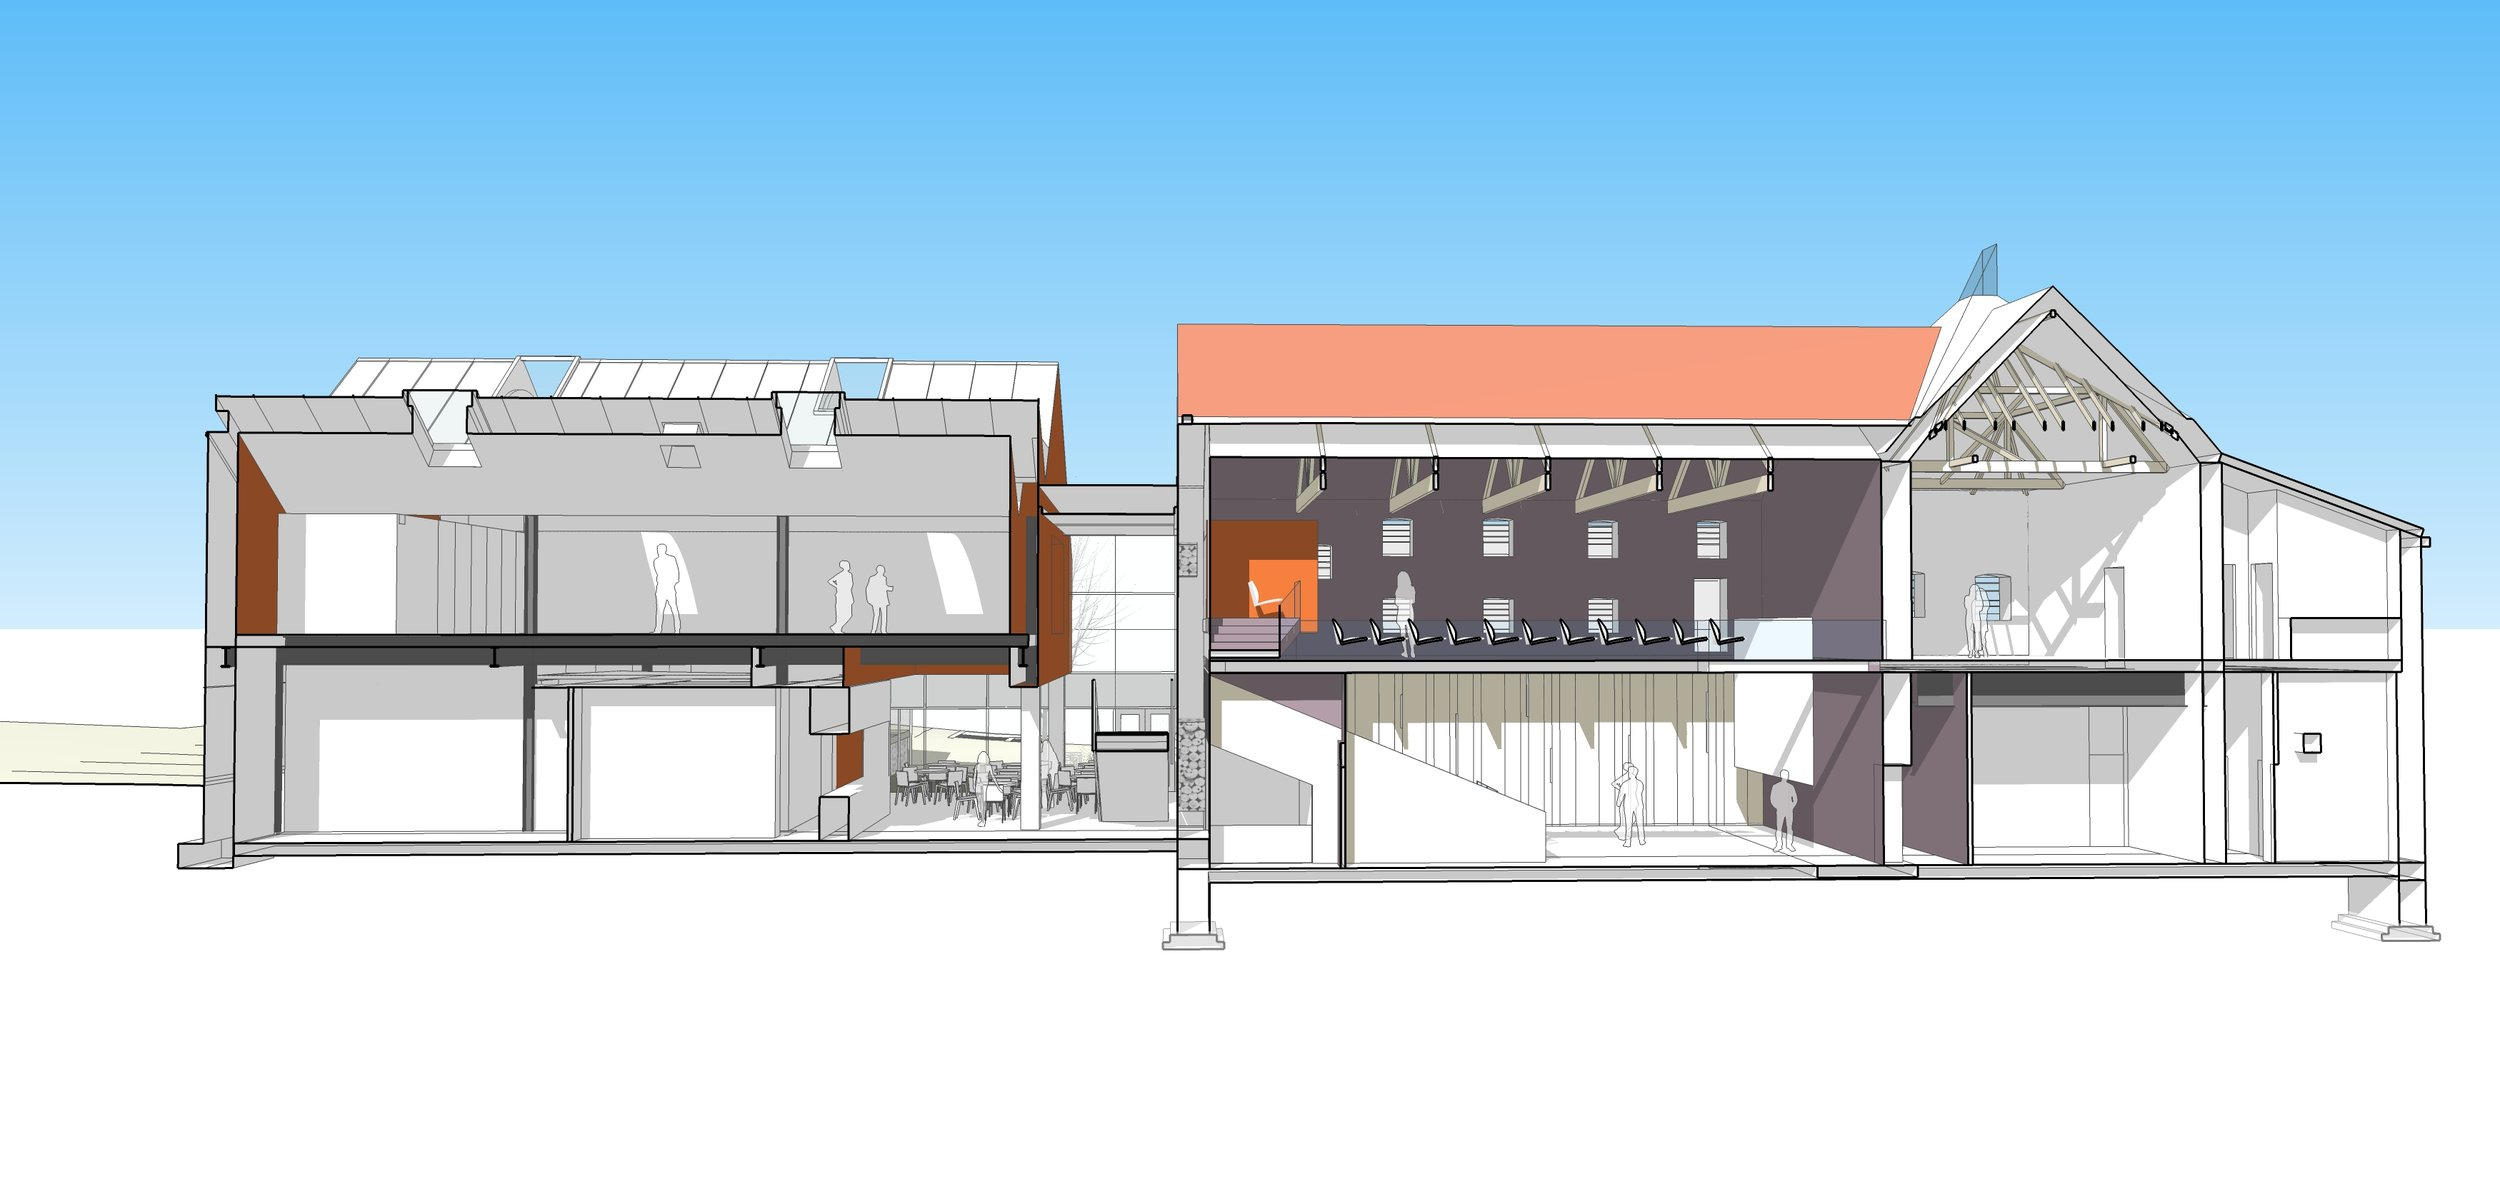 wells maltings trust - plans for the new theatre space